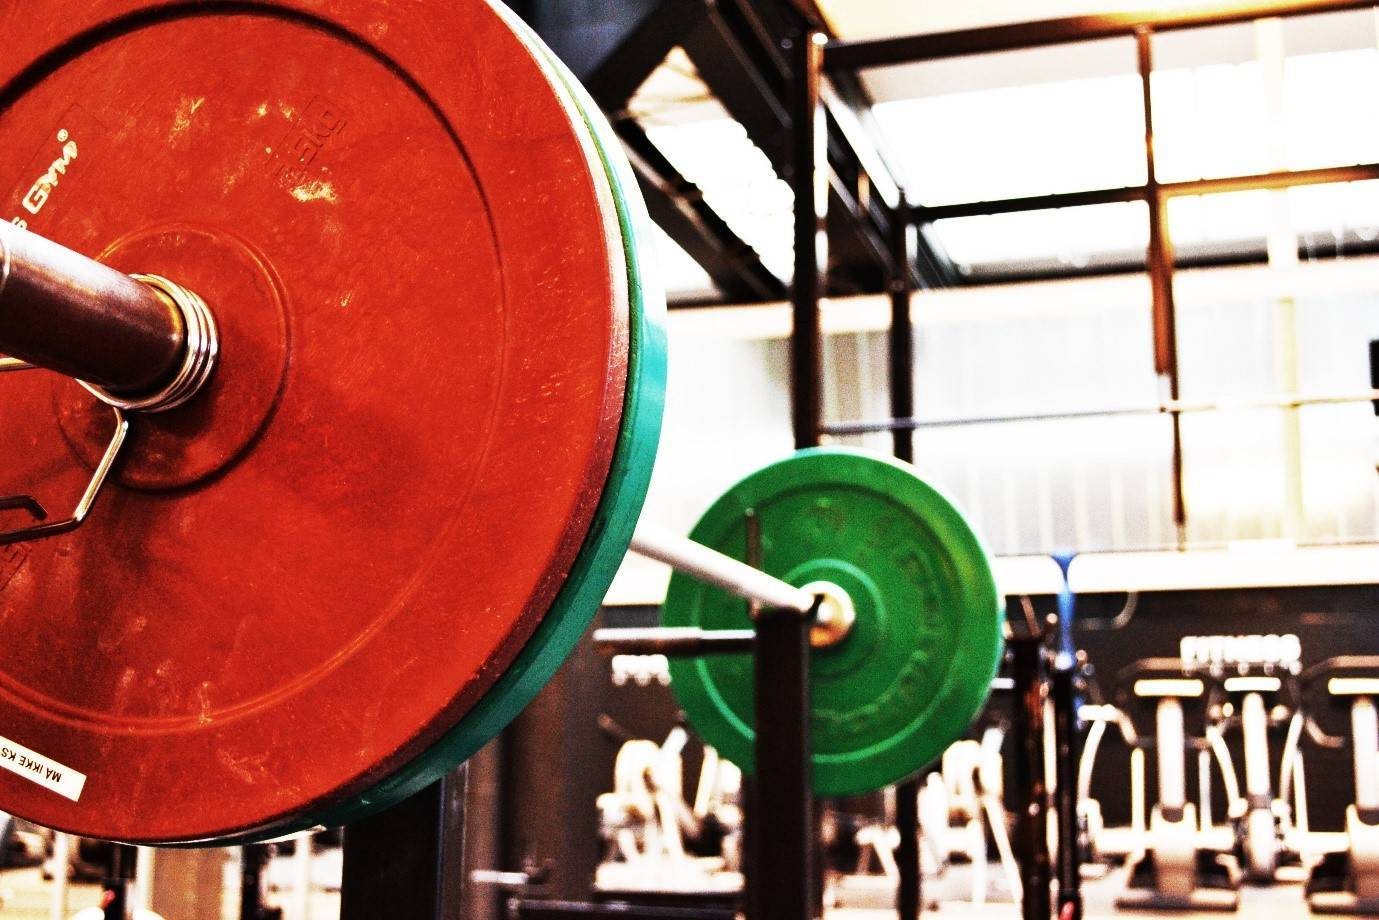 A barbell racked with weights in the gym.